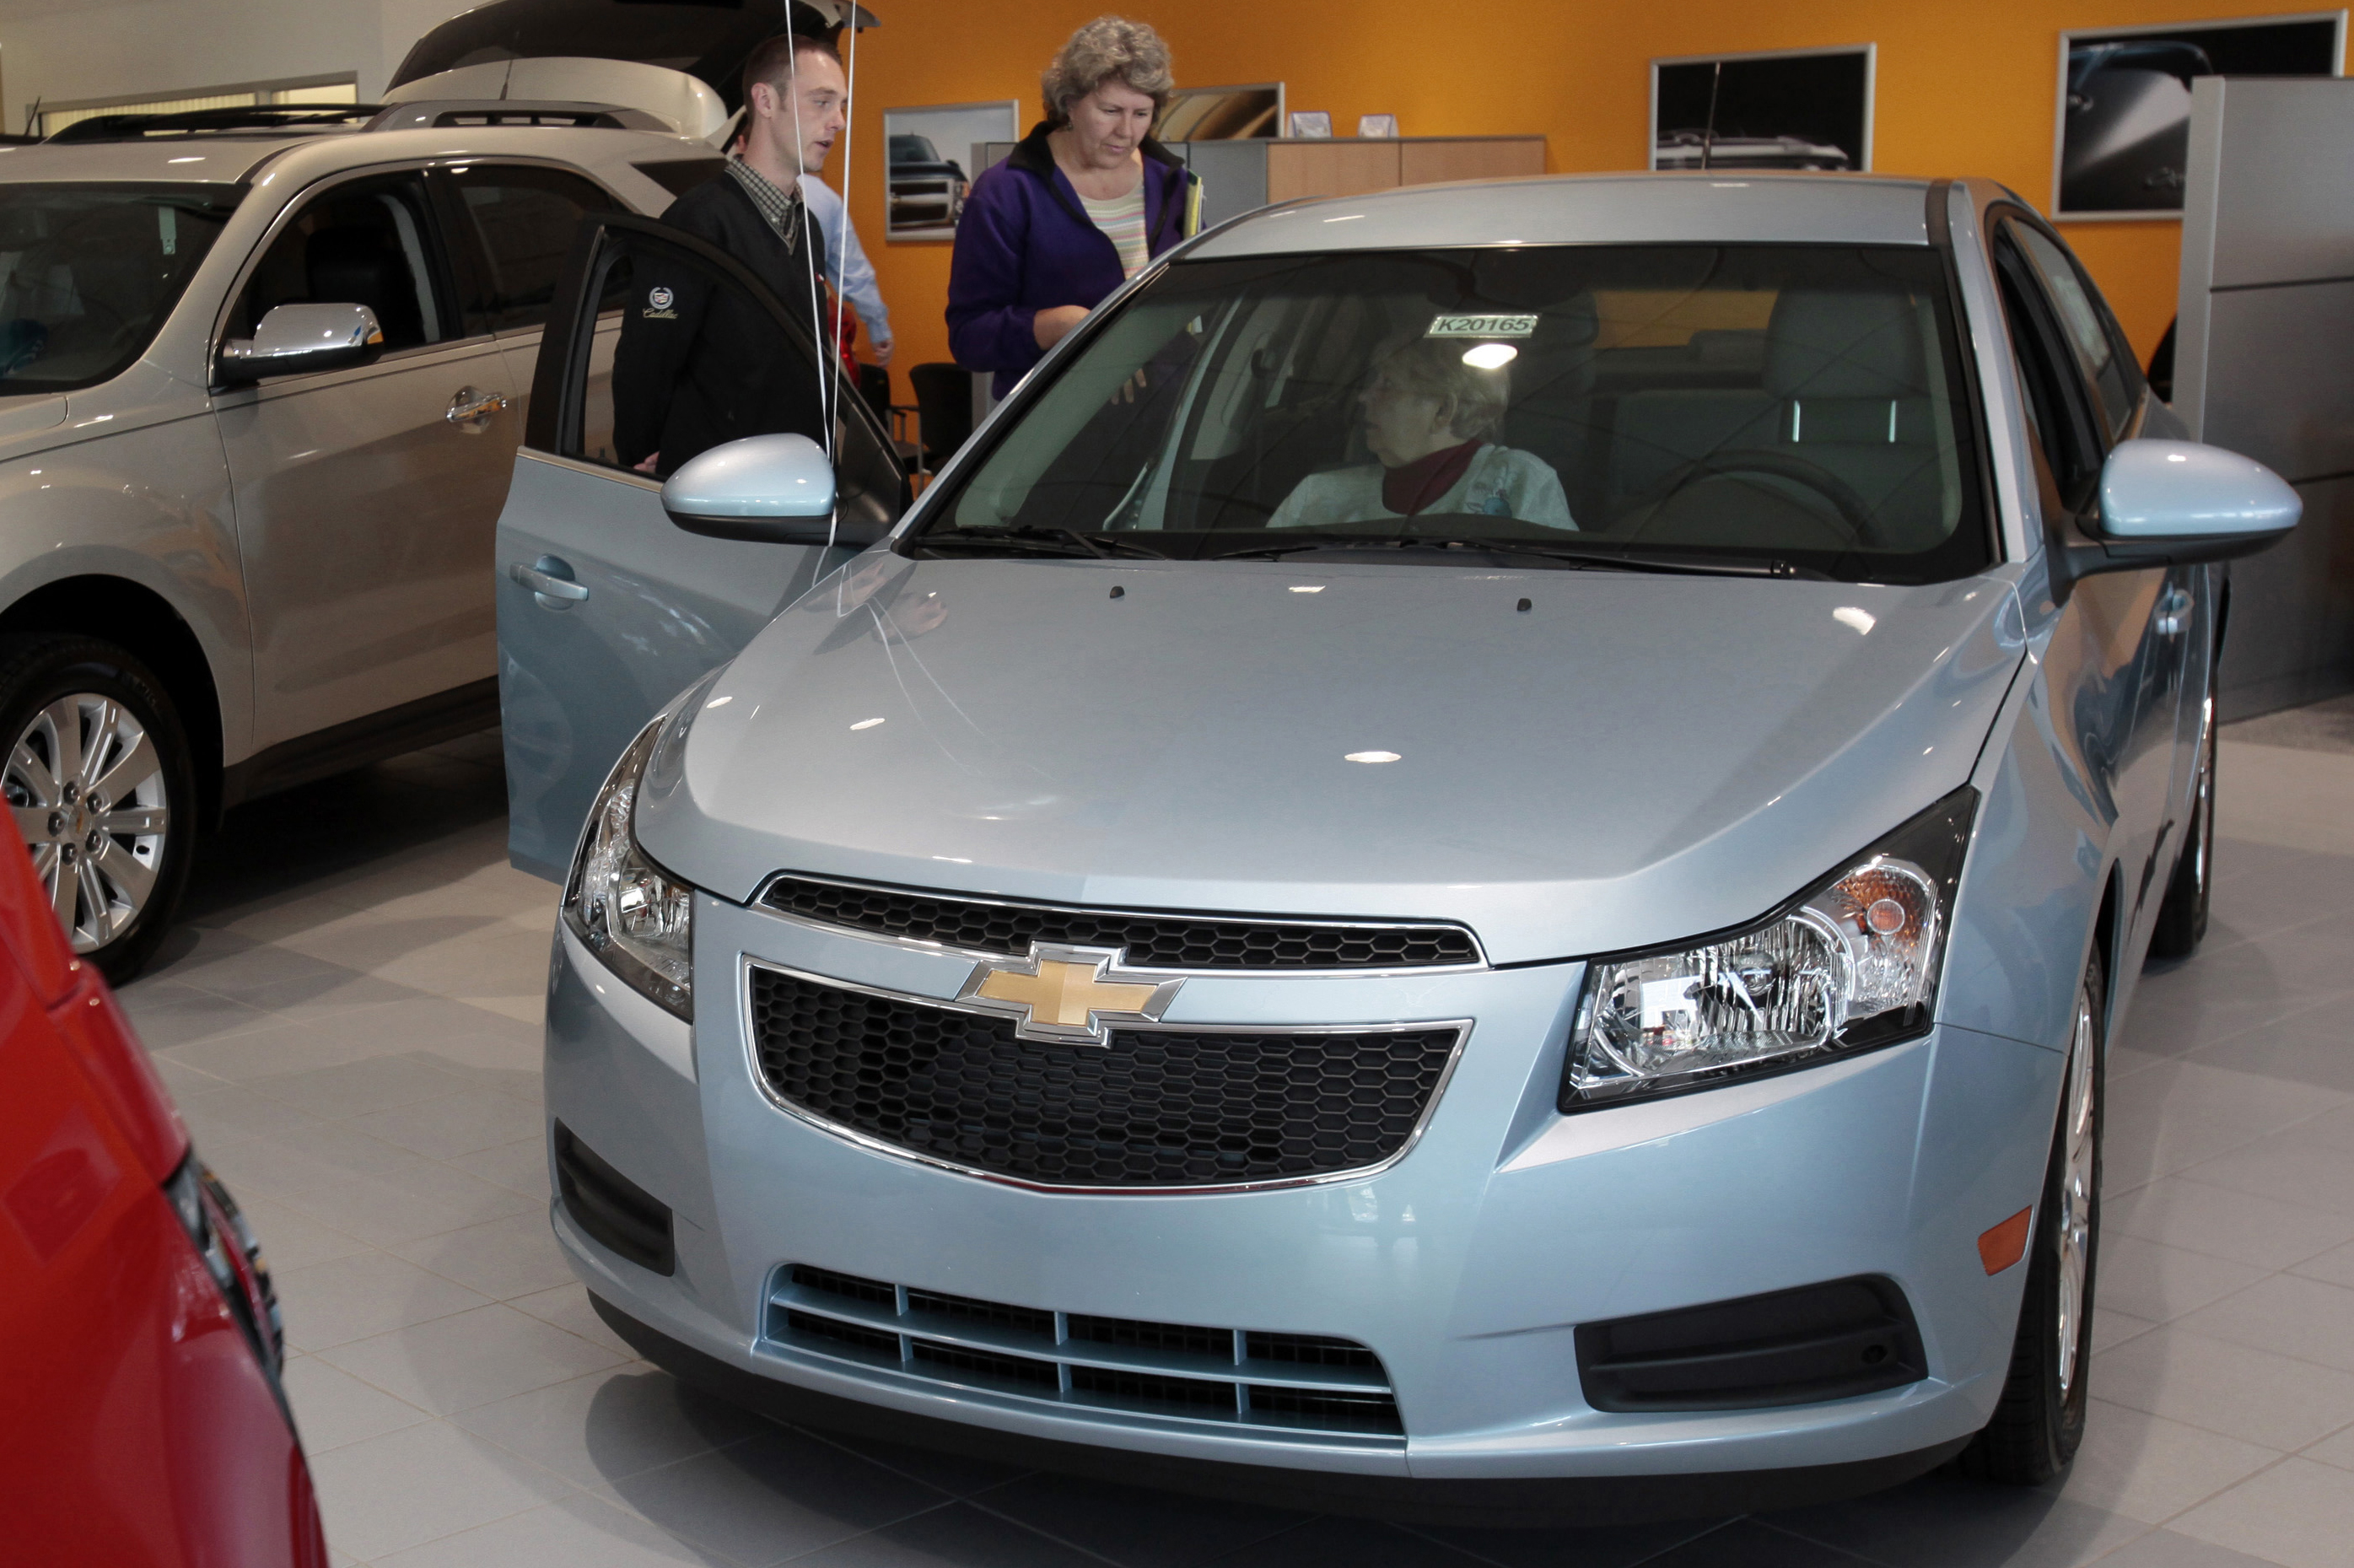 chevrolet cruze recall 2013 gm recalls 293 000 vehicles. Black Bedroom Furniture Sets. Home Design Ideas